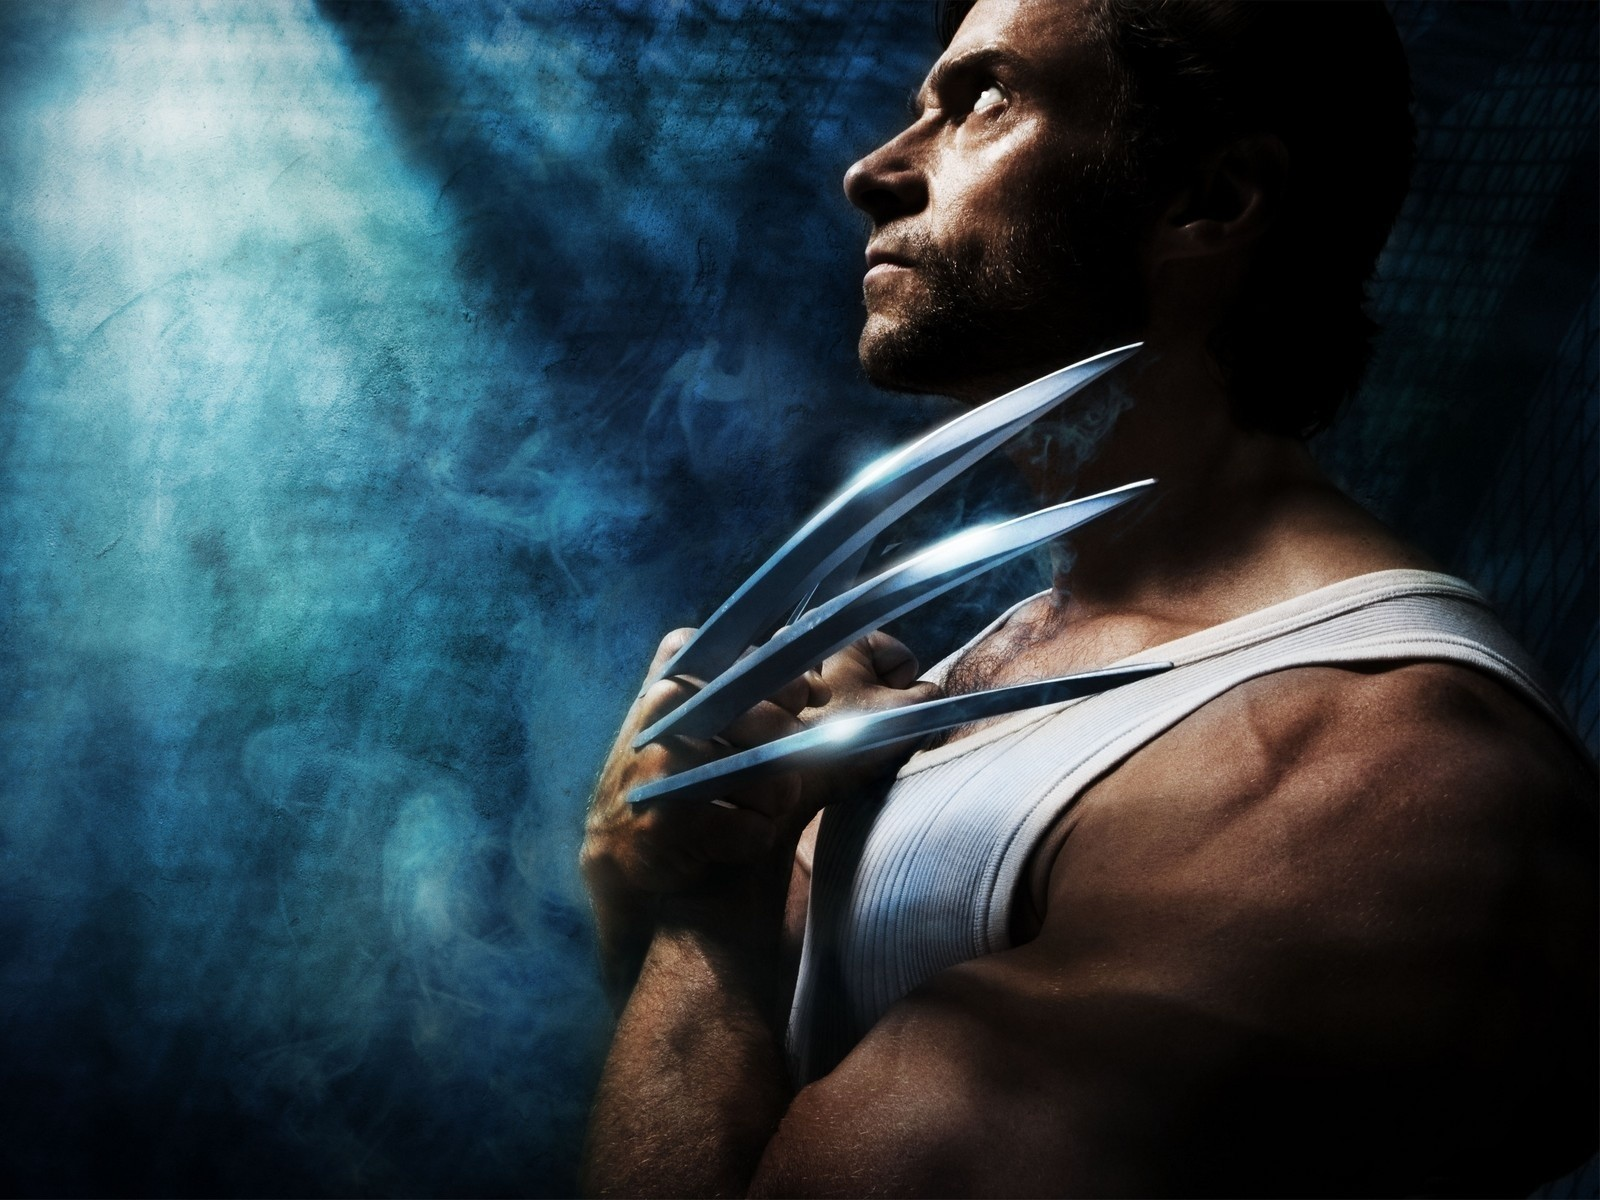 Movies X-Men wolverine Hugh HD Wallpaper